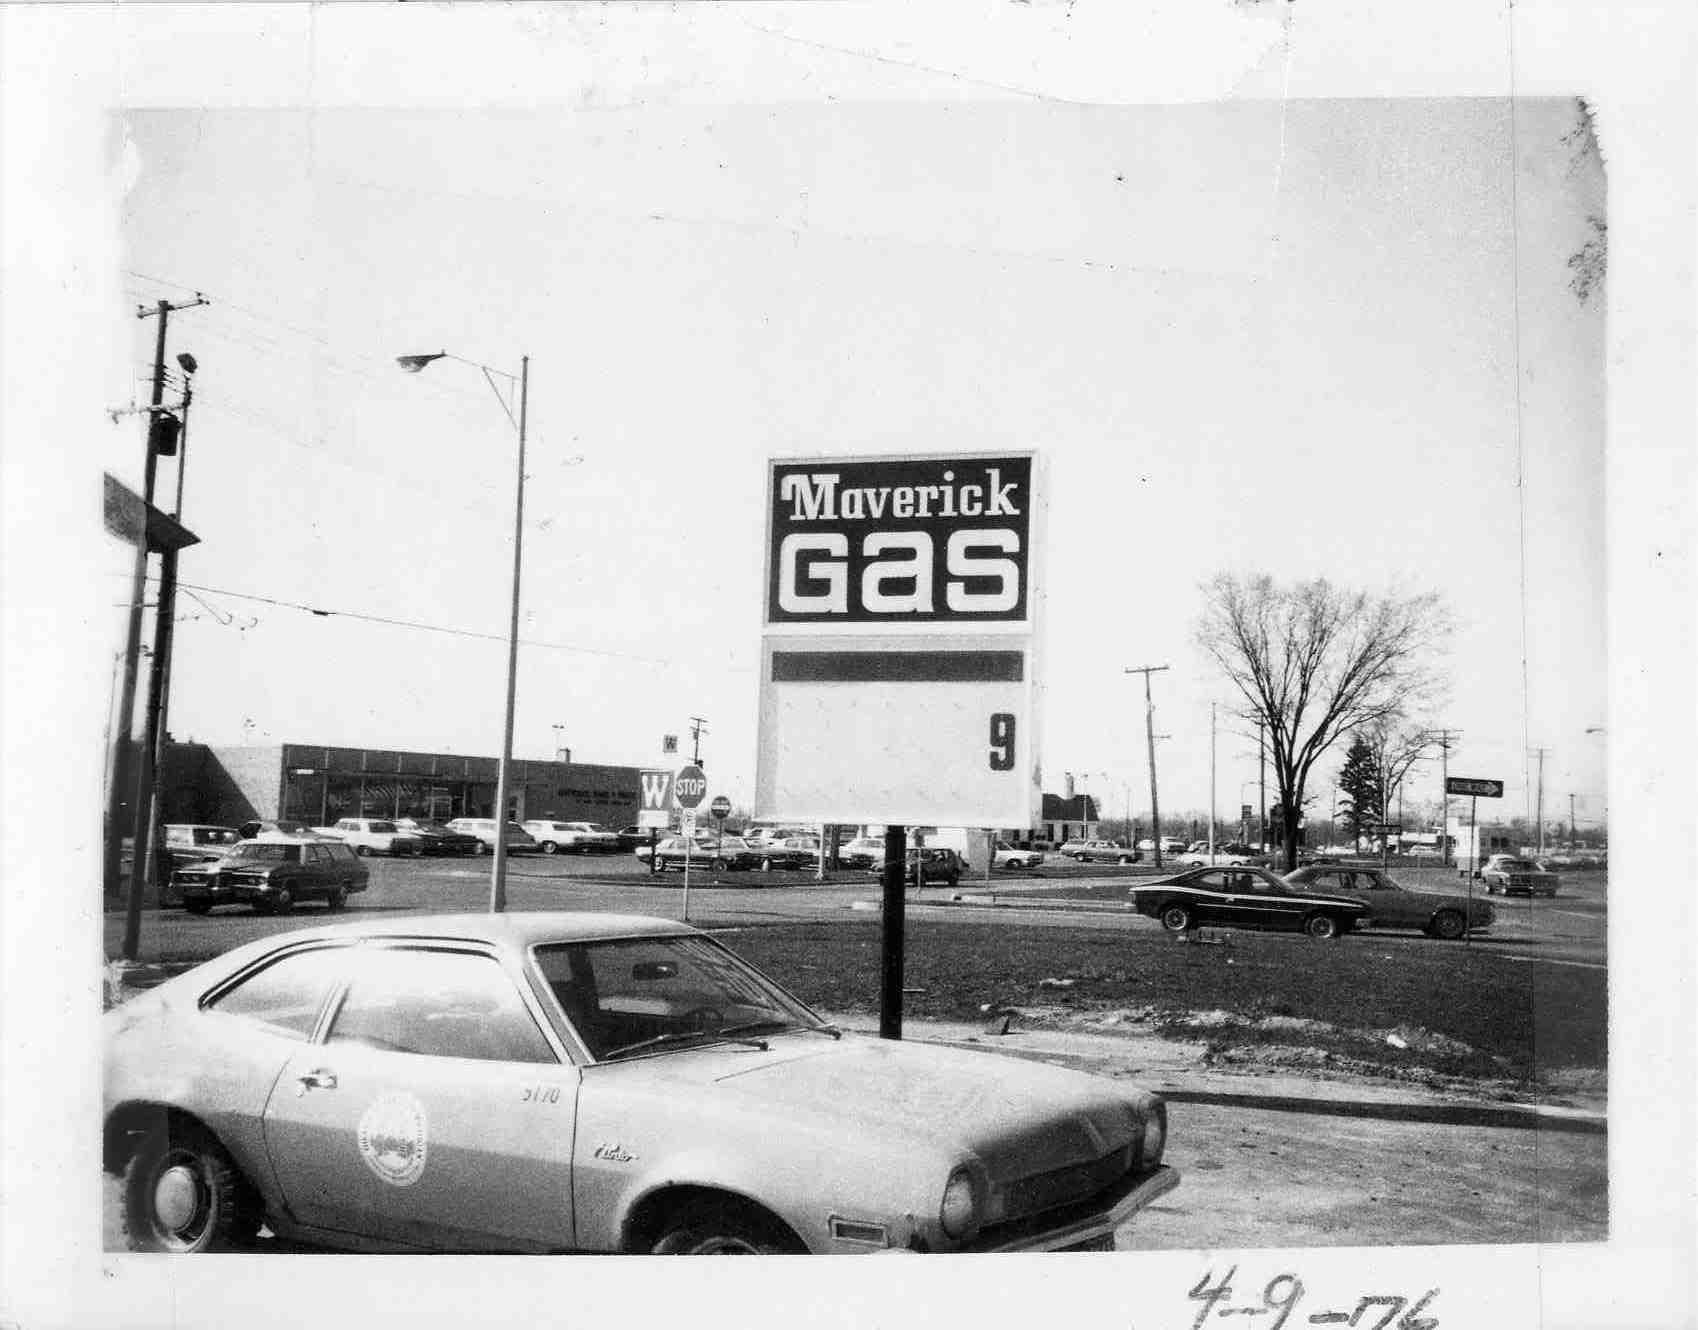 Maverick Oil Co., 1976 image